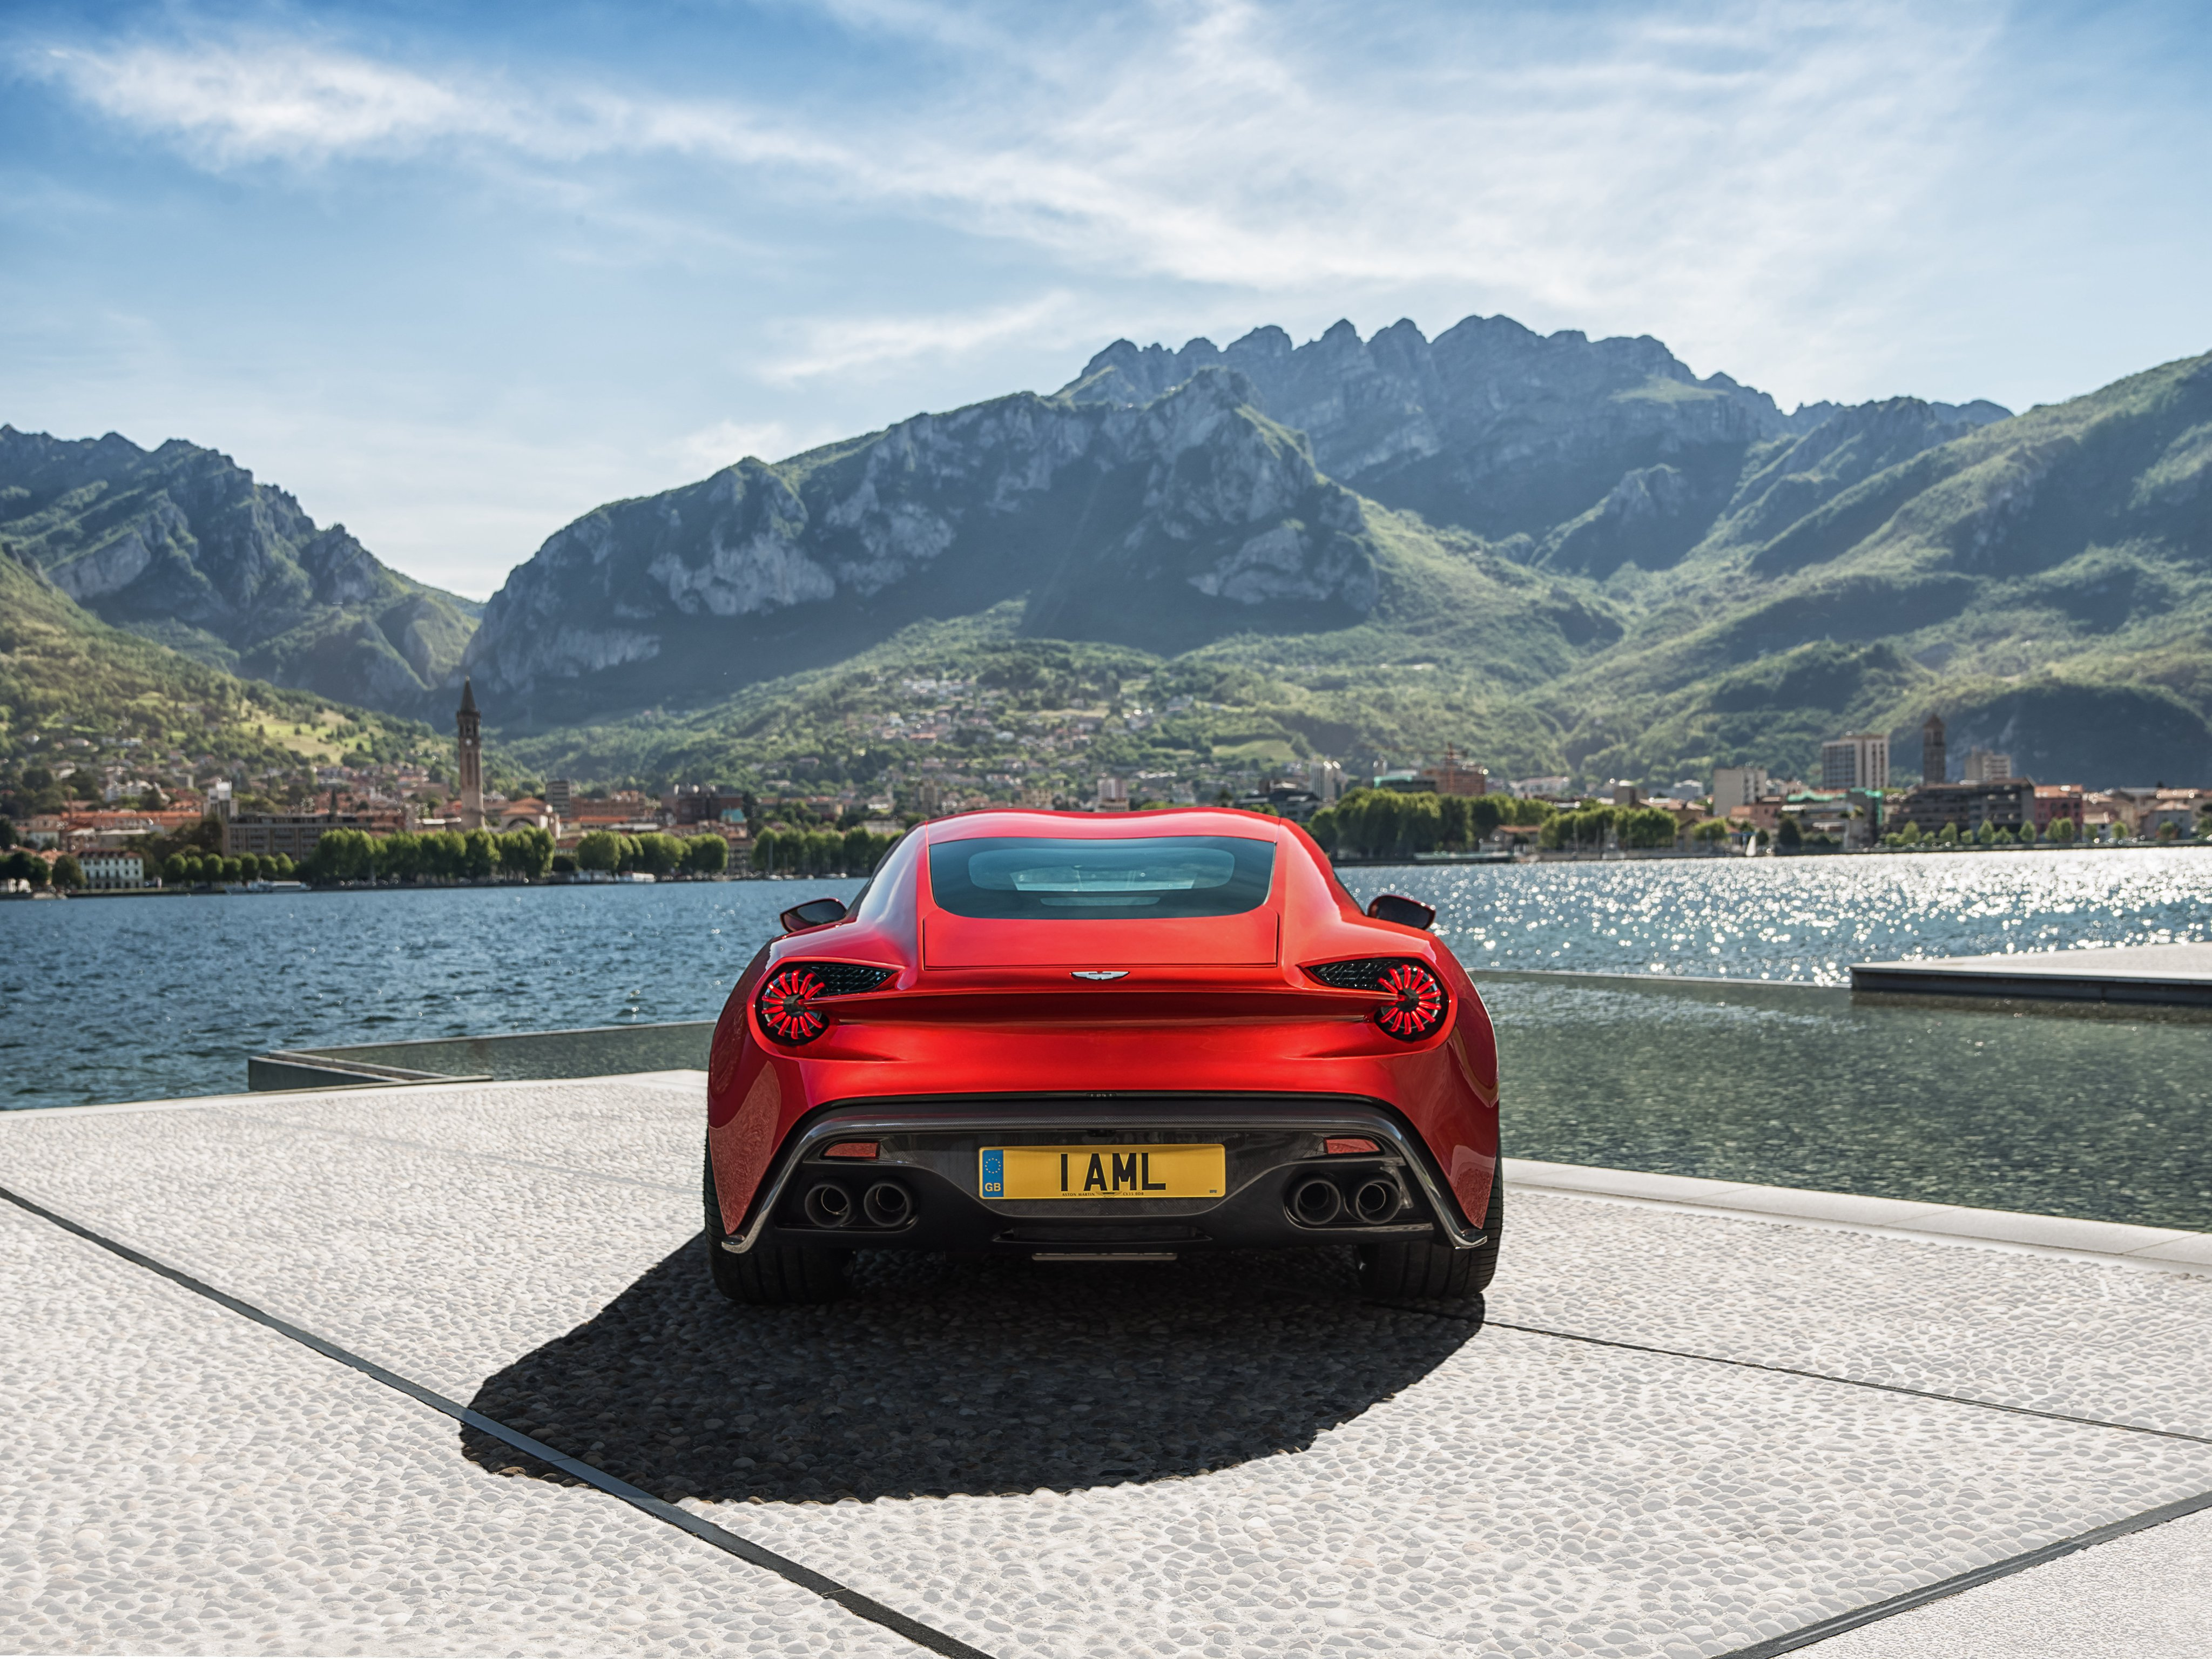 2016 Aston Martin Vanquish Zagato Concept Zagato wallpaper background